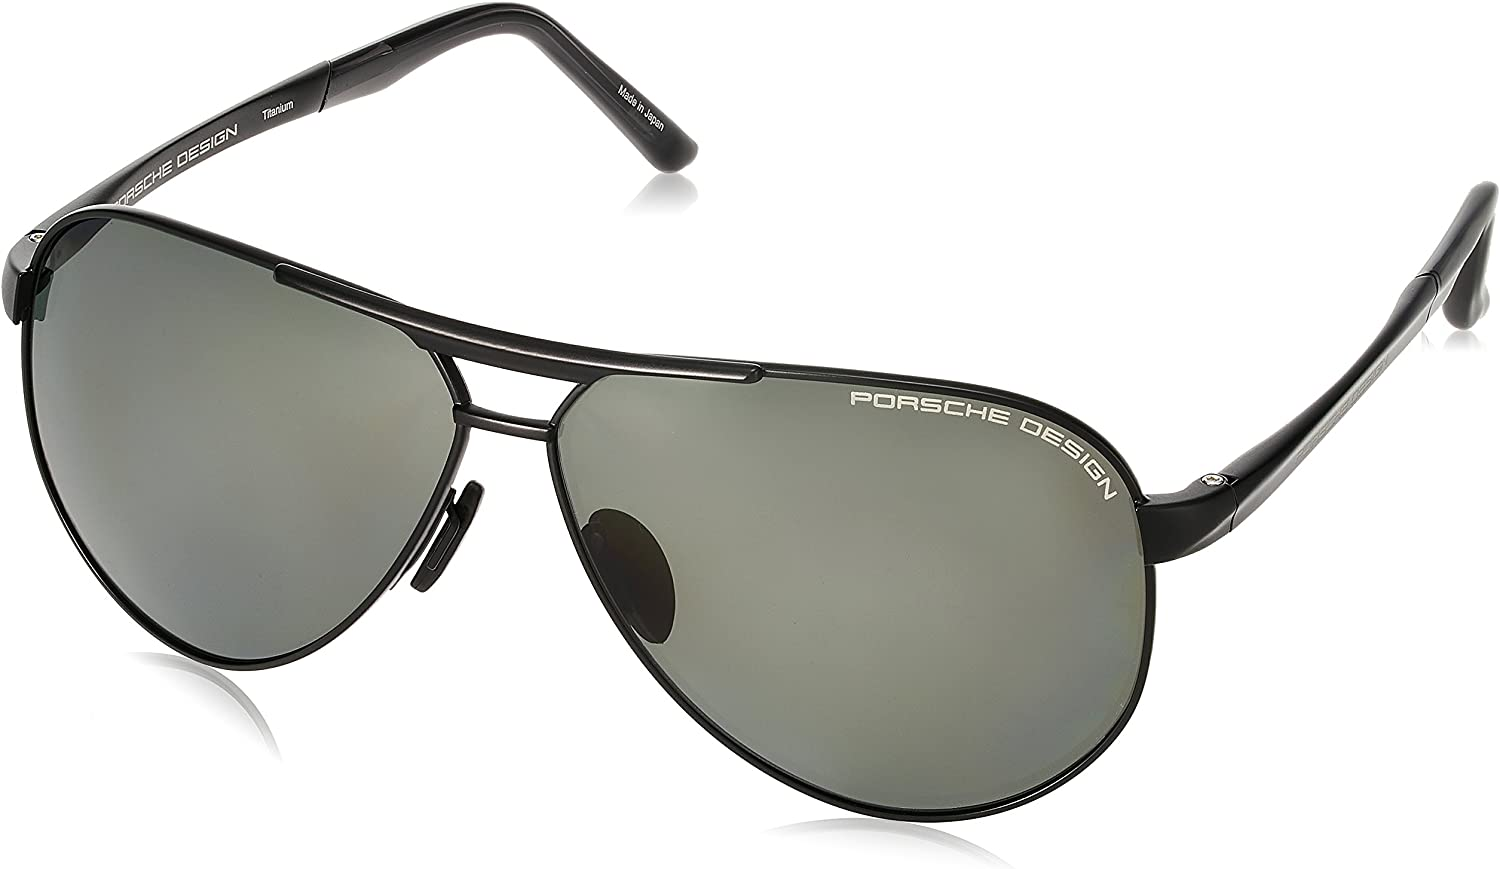 PORSCHE DESIGN EYEWEAR AVIATOR SUNGLASSES MATTE GOLD SOLID GREY GREEN P8629 B